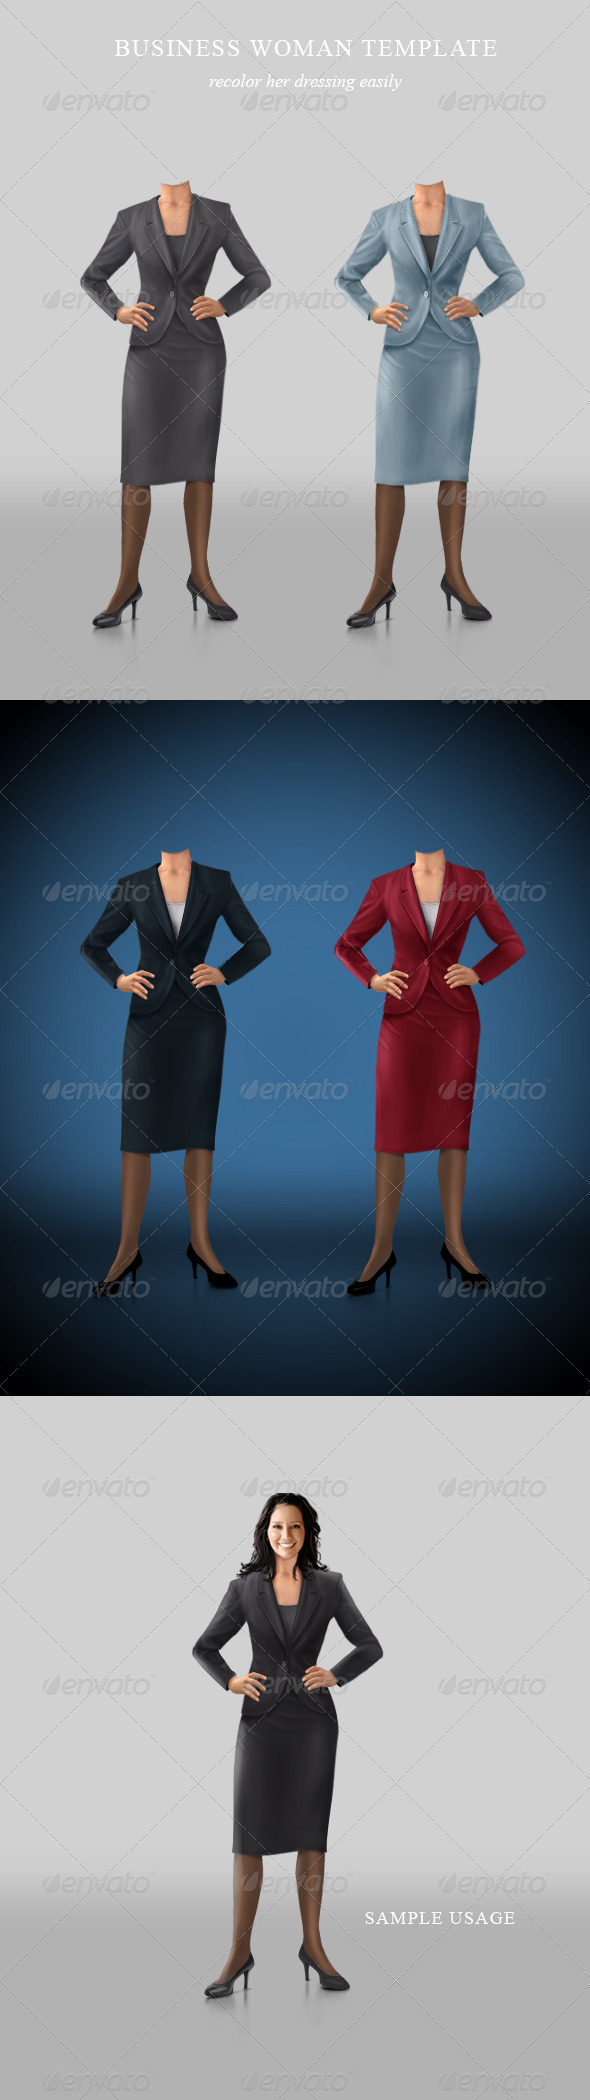 Confident businesswoman template - Business Illustrations